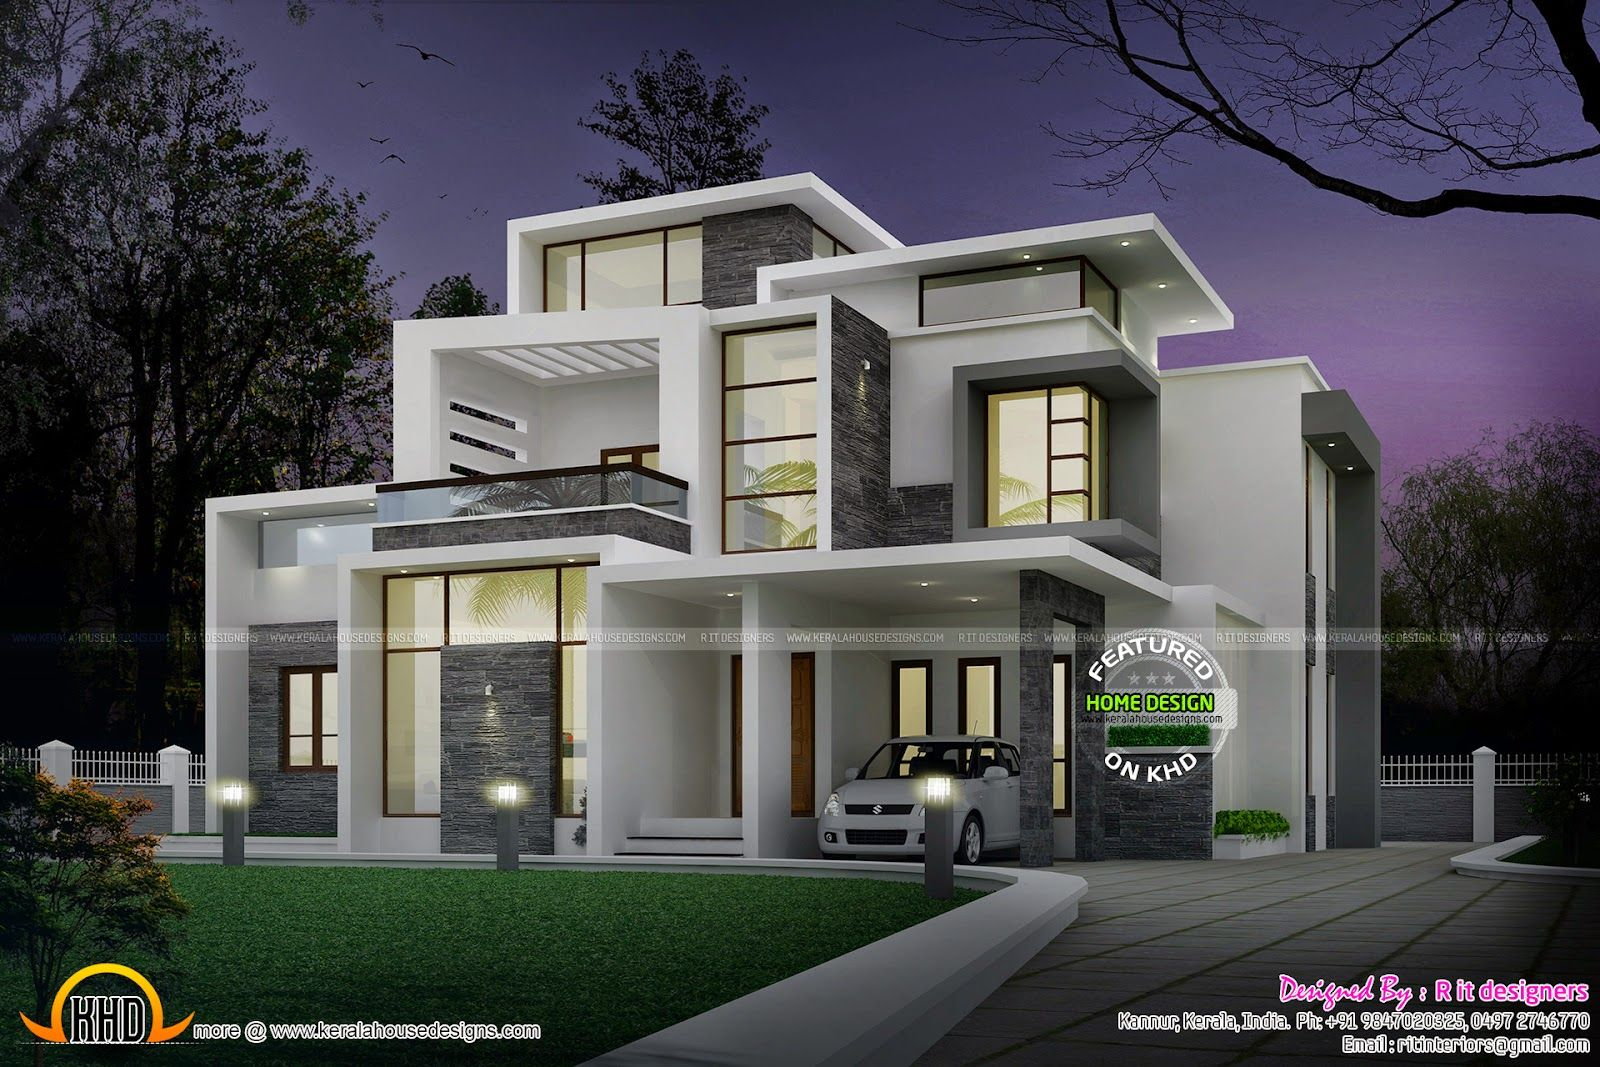 Grand contemporary home design kerala home design and for New modern house design